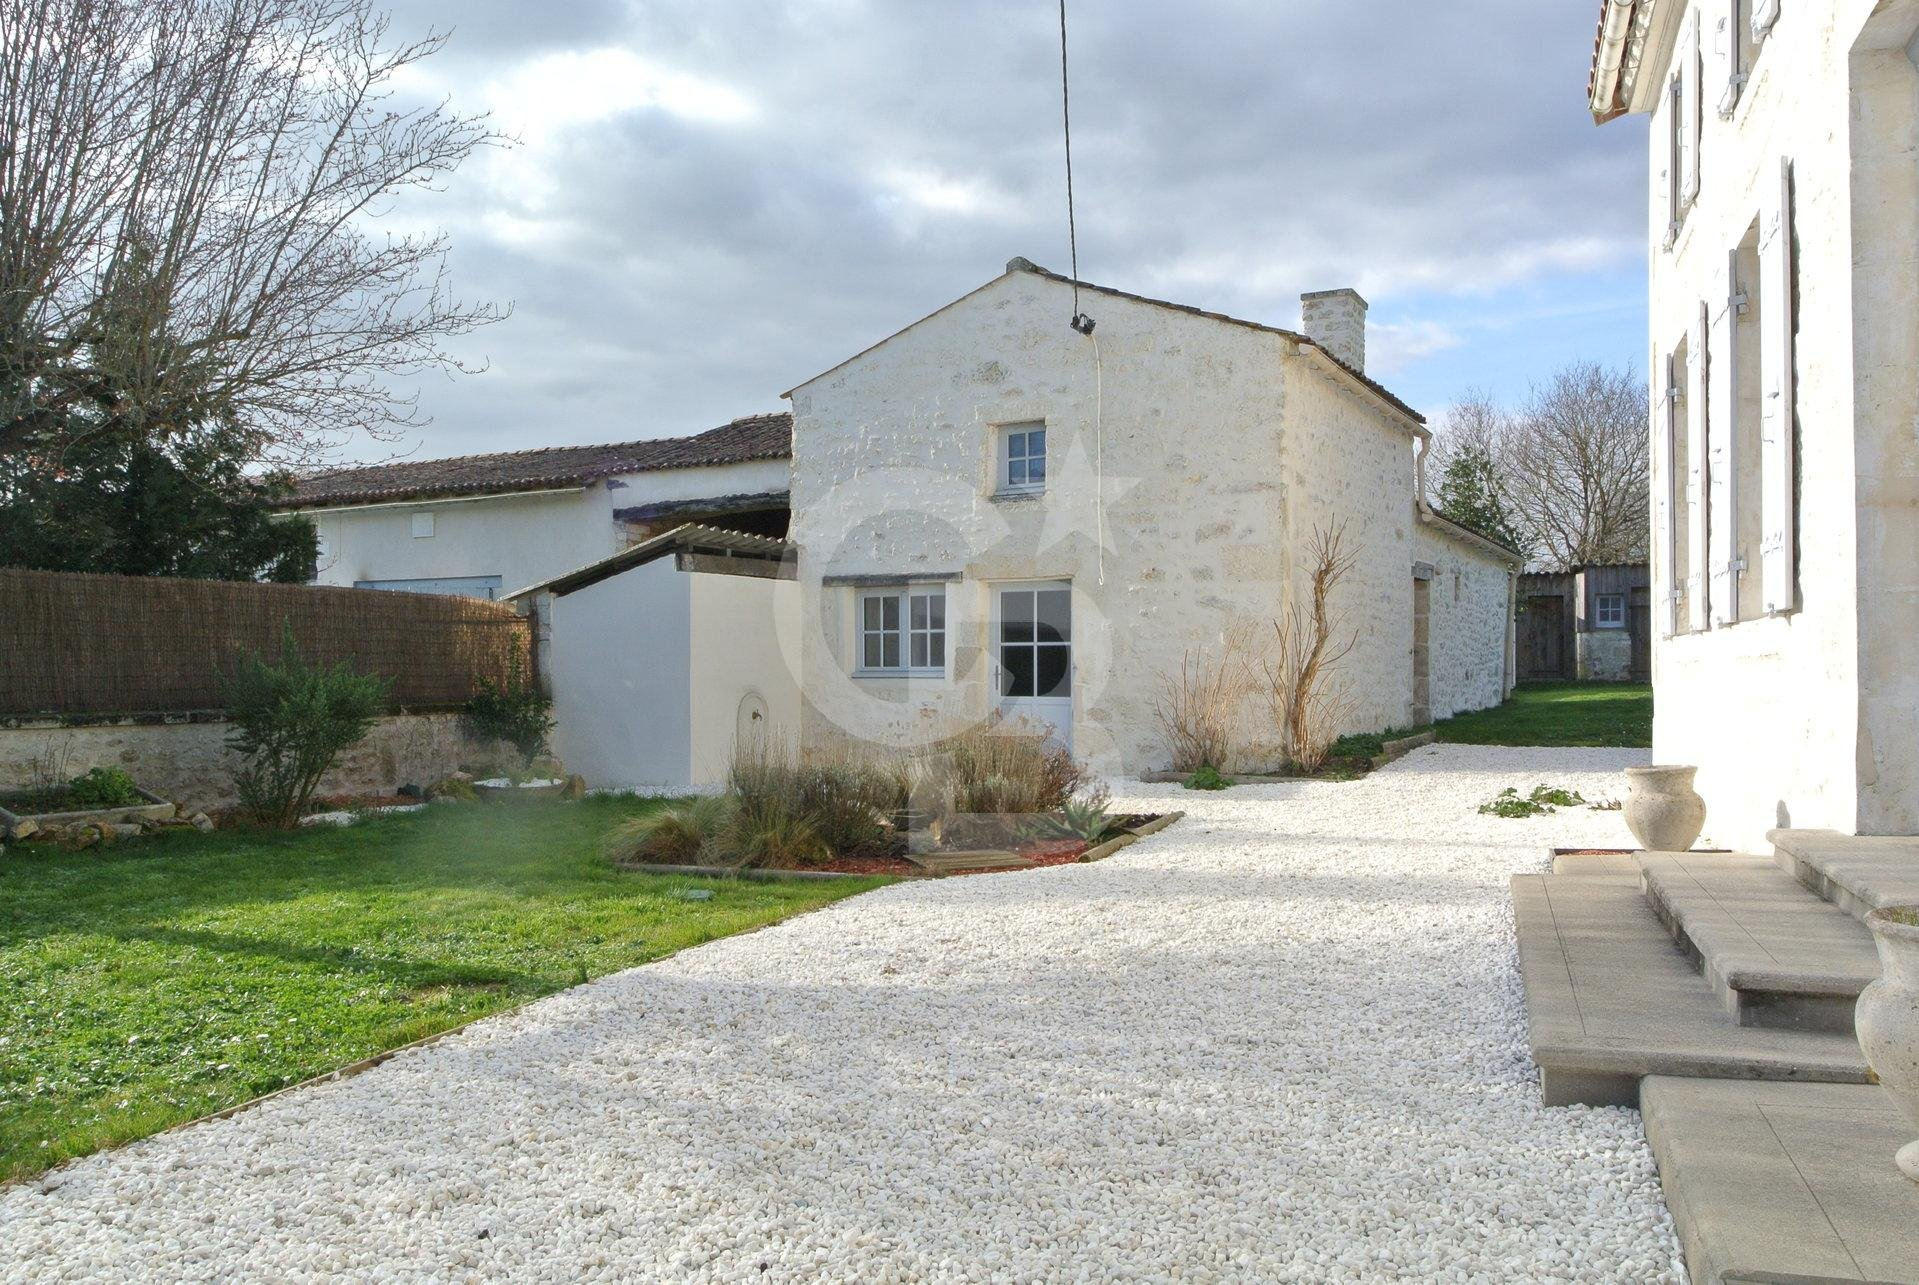 STONE HOUSE and Outbuildings for Sale in MEURSAC